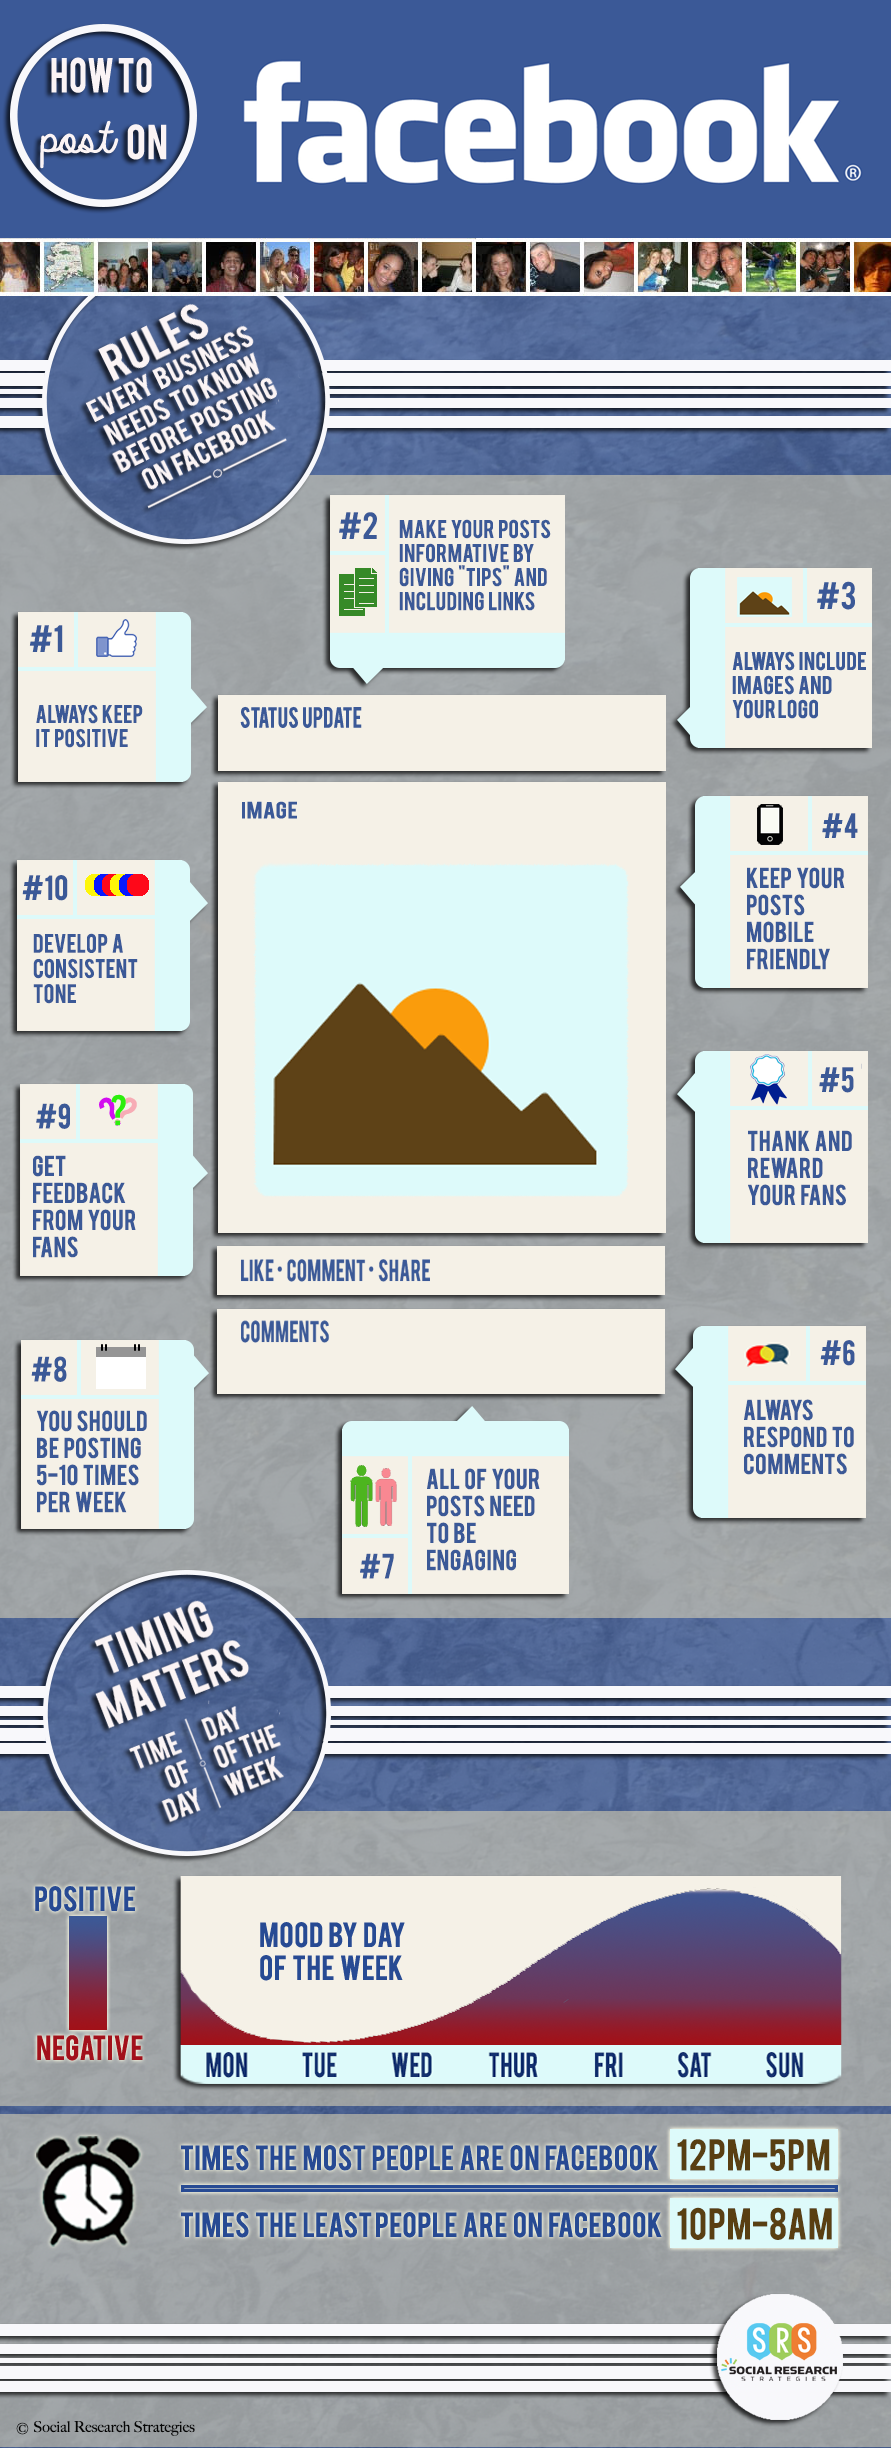 The 10 Rules That Every Business Needs To Know Before Posting Content On Facebook - infographic